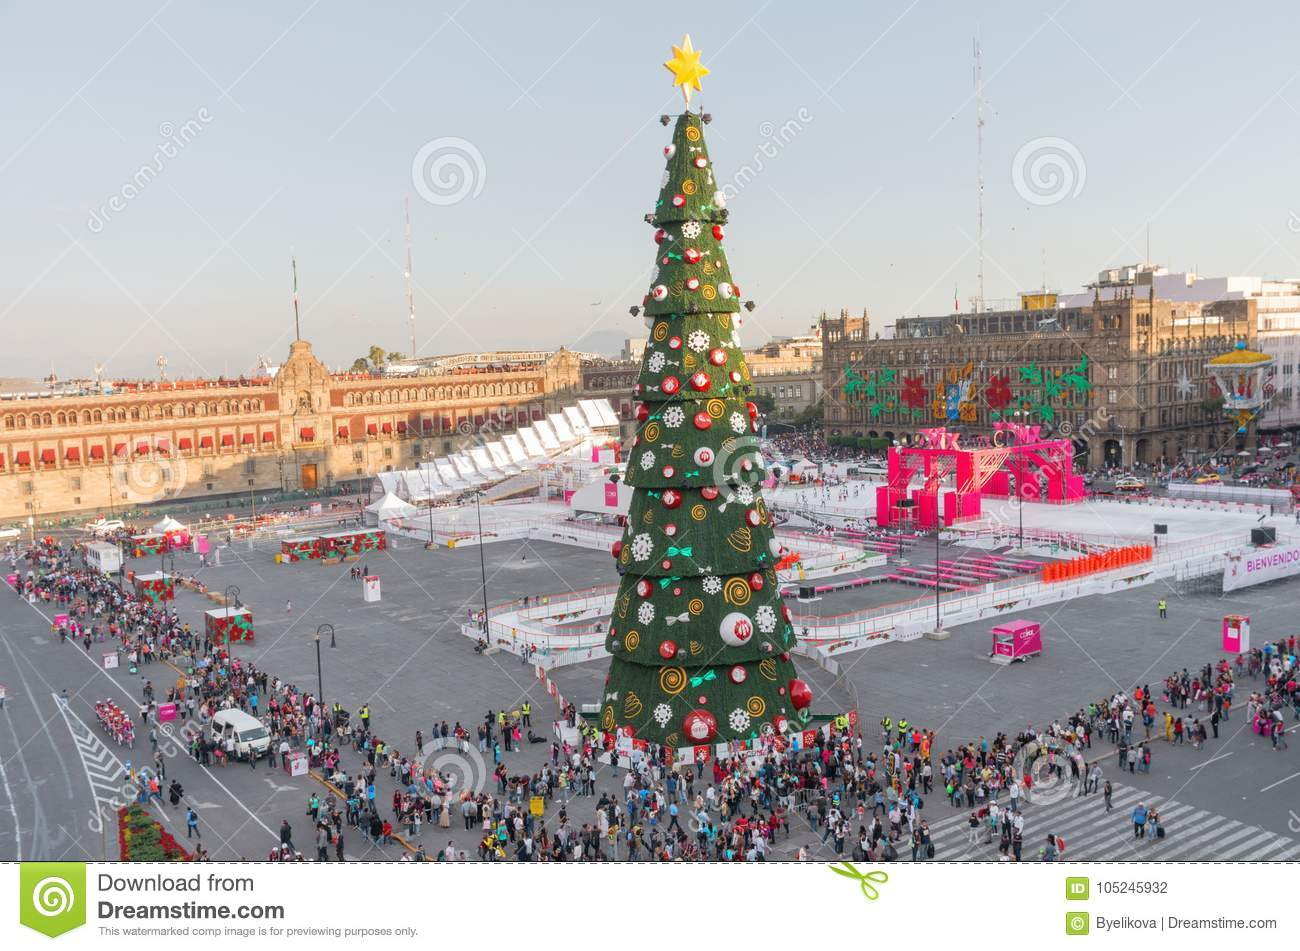 Images Of Zocalo In Mexico Christmas 2021 Christmas Tree And Ice Skating Rink On Zocalo Mexico City Editorial Photography Image Of Decorations Tree 105245932